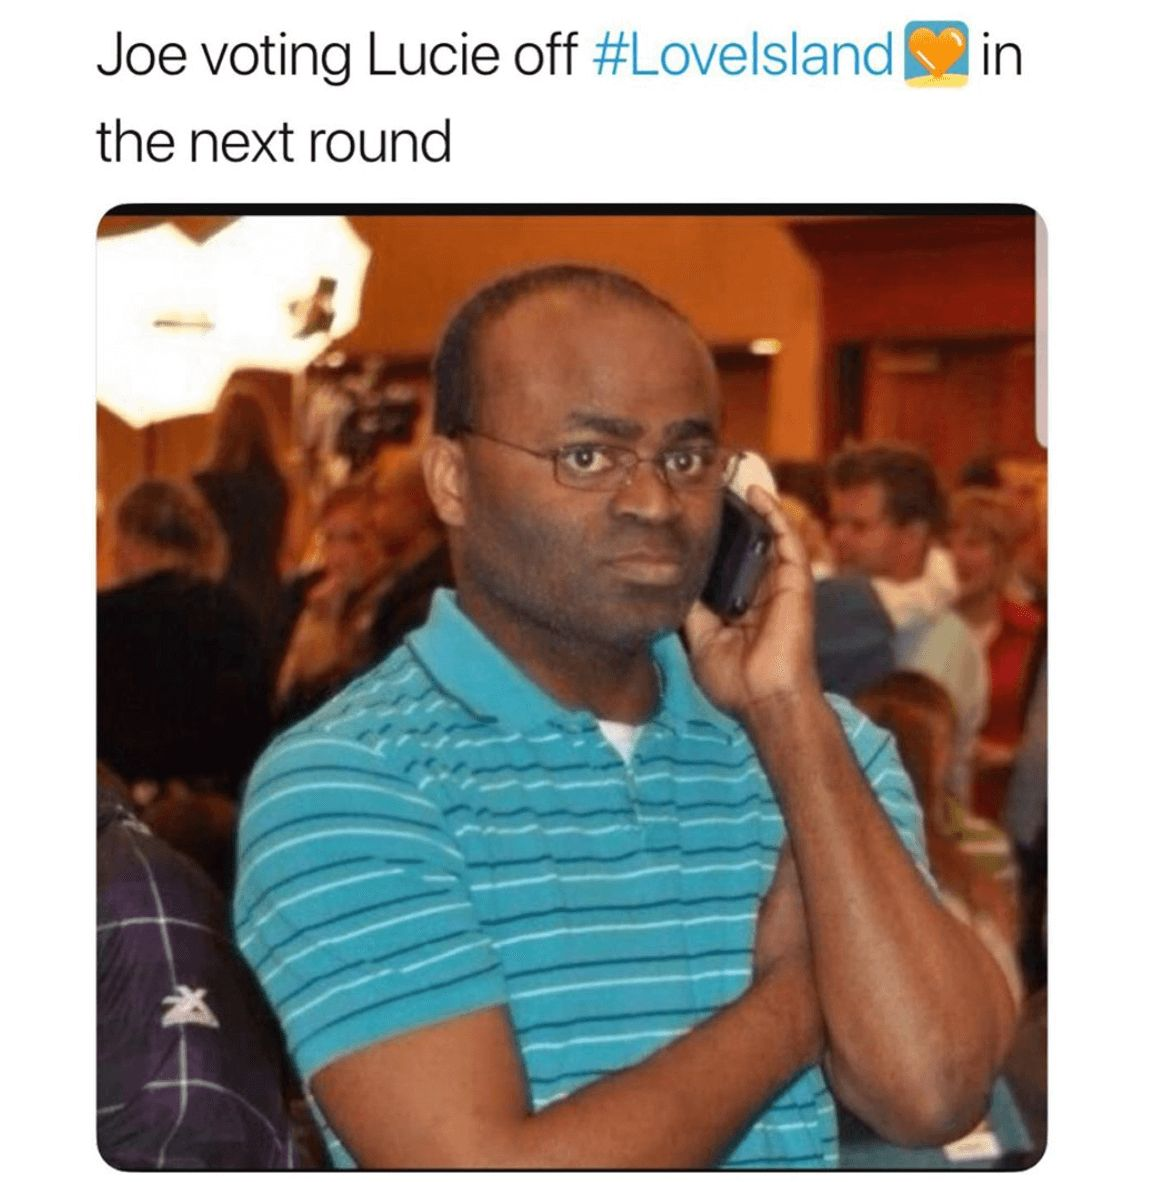 Image may contain: Love Island week two memes, Love Island, memes, reactions, tweet, funny, savage, meme, Joe, Lucie, Clothing, Apparel, Accessories, Glasses, Accessory, Face, Mobile Phone, Cell Phone, Indoors, Interior Design, Phone, Electronics, Human, Person